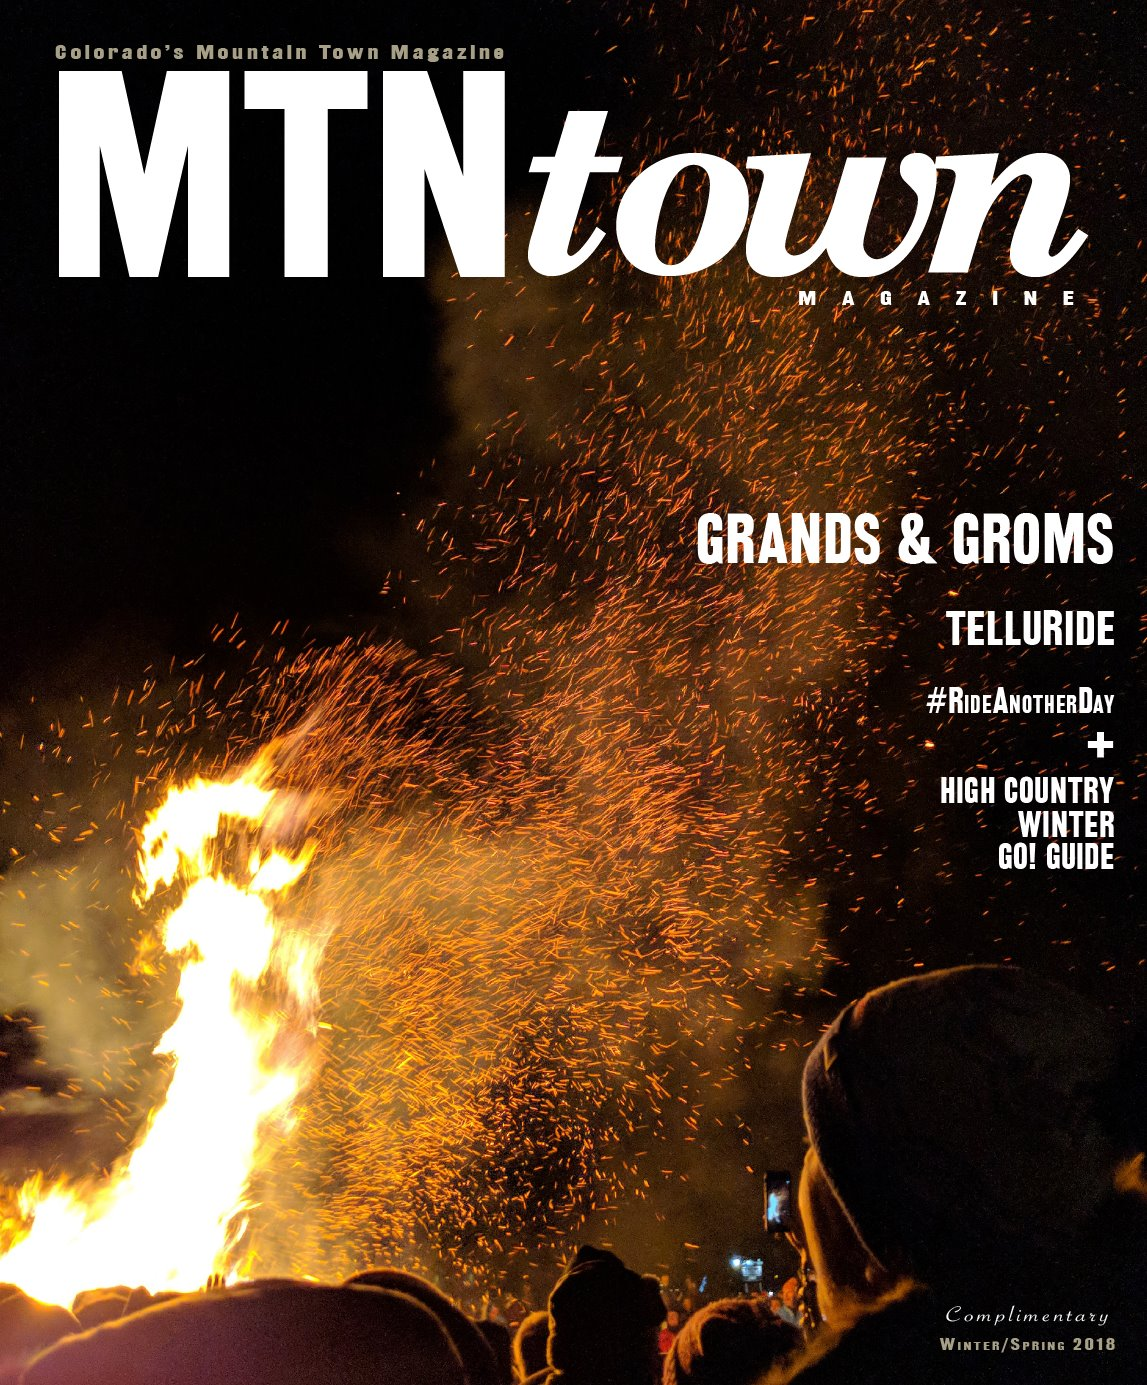 MTN Town Magazine WinterSpring 2018 Cover